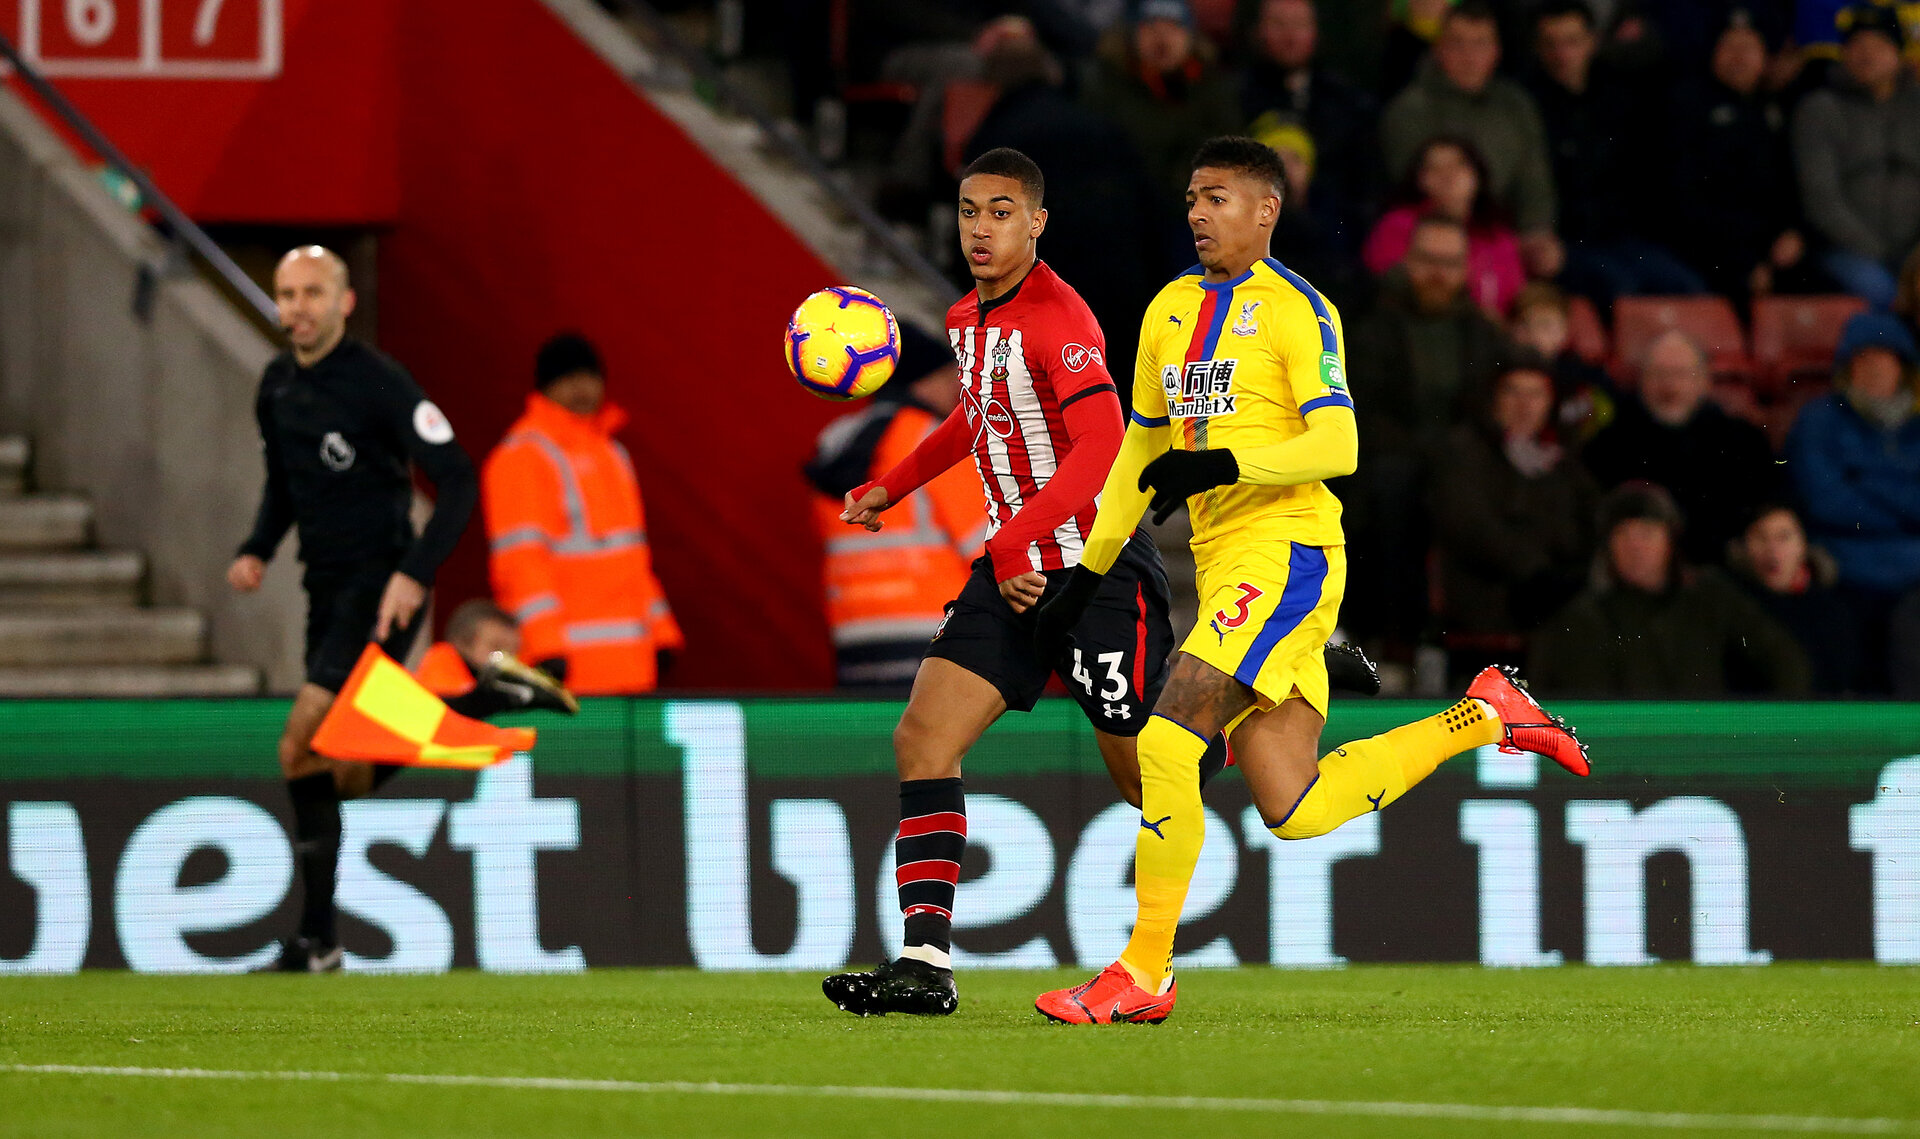 SOUTHAMPTON, ENGLAND - JANUARY 30: Yan Valery(L) of Southampton and Patrick van Aanholt of Crystal Palace during the Premier League match between Southampton FC and Crystal Palace at St Mary's Stadium on January 30, 2019 in Southampton, United Kingdom. (Photo by Matt Watson/Southampton FC via Getty Images)